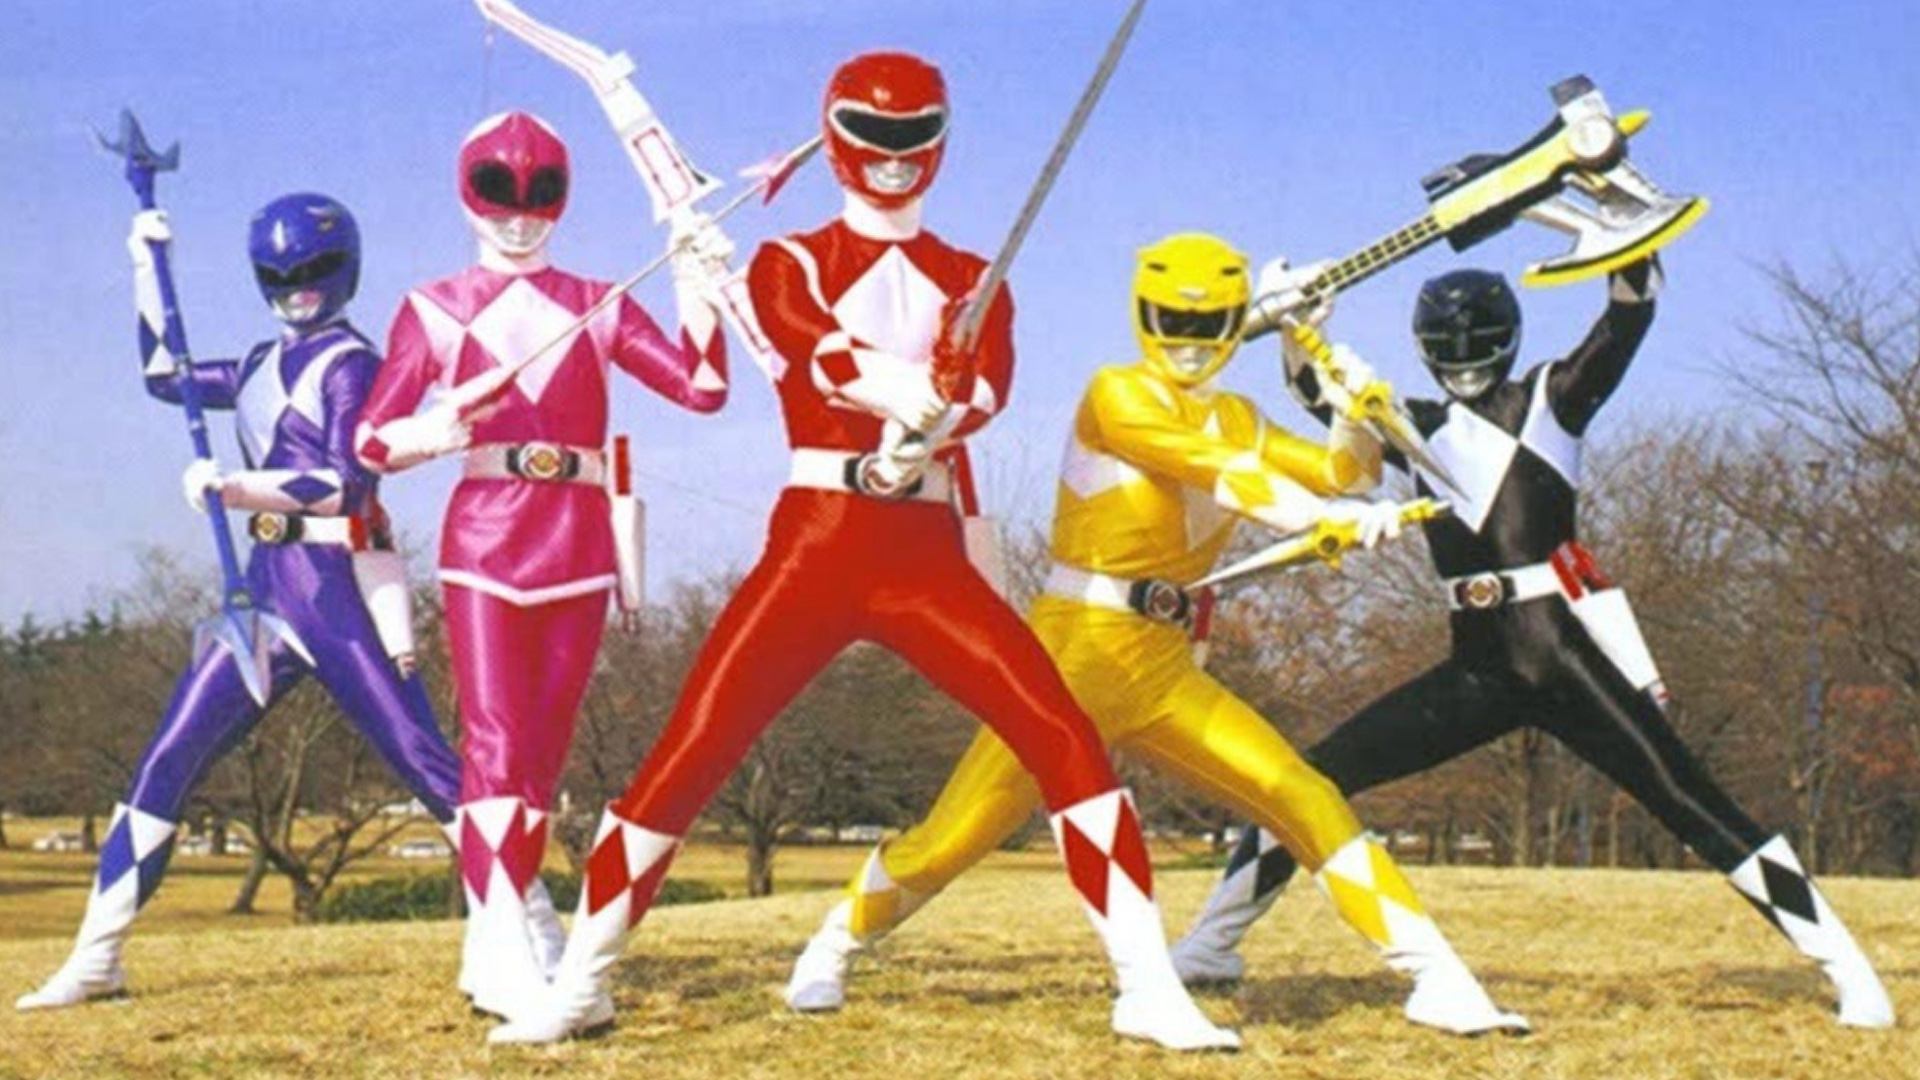 National Power Rangers Day